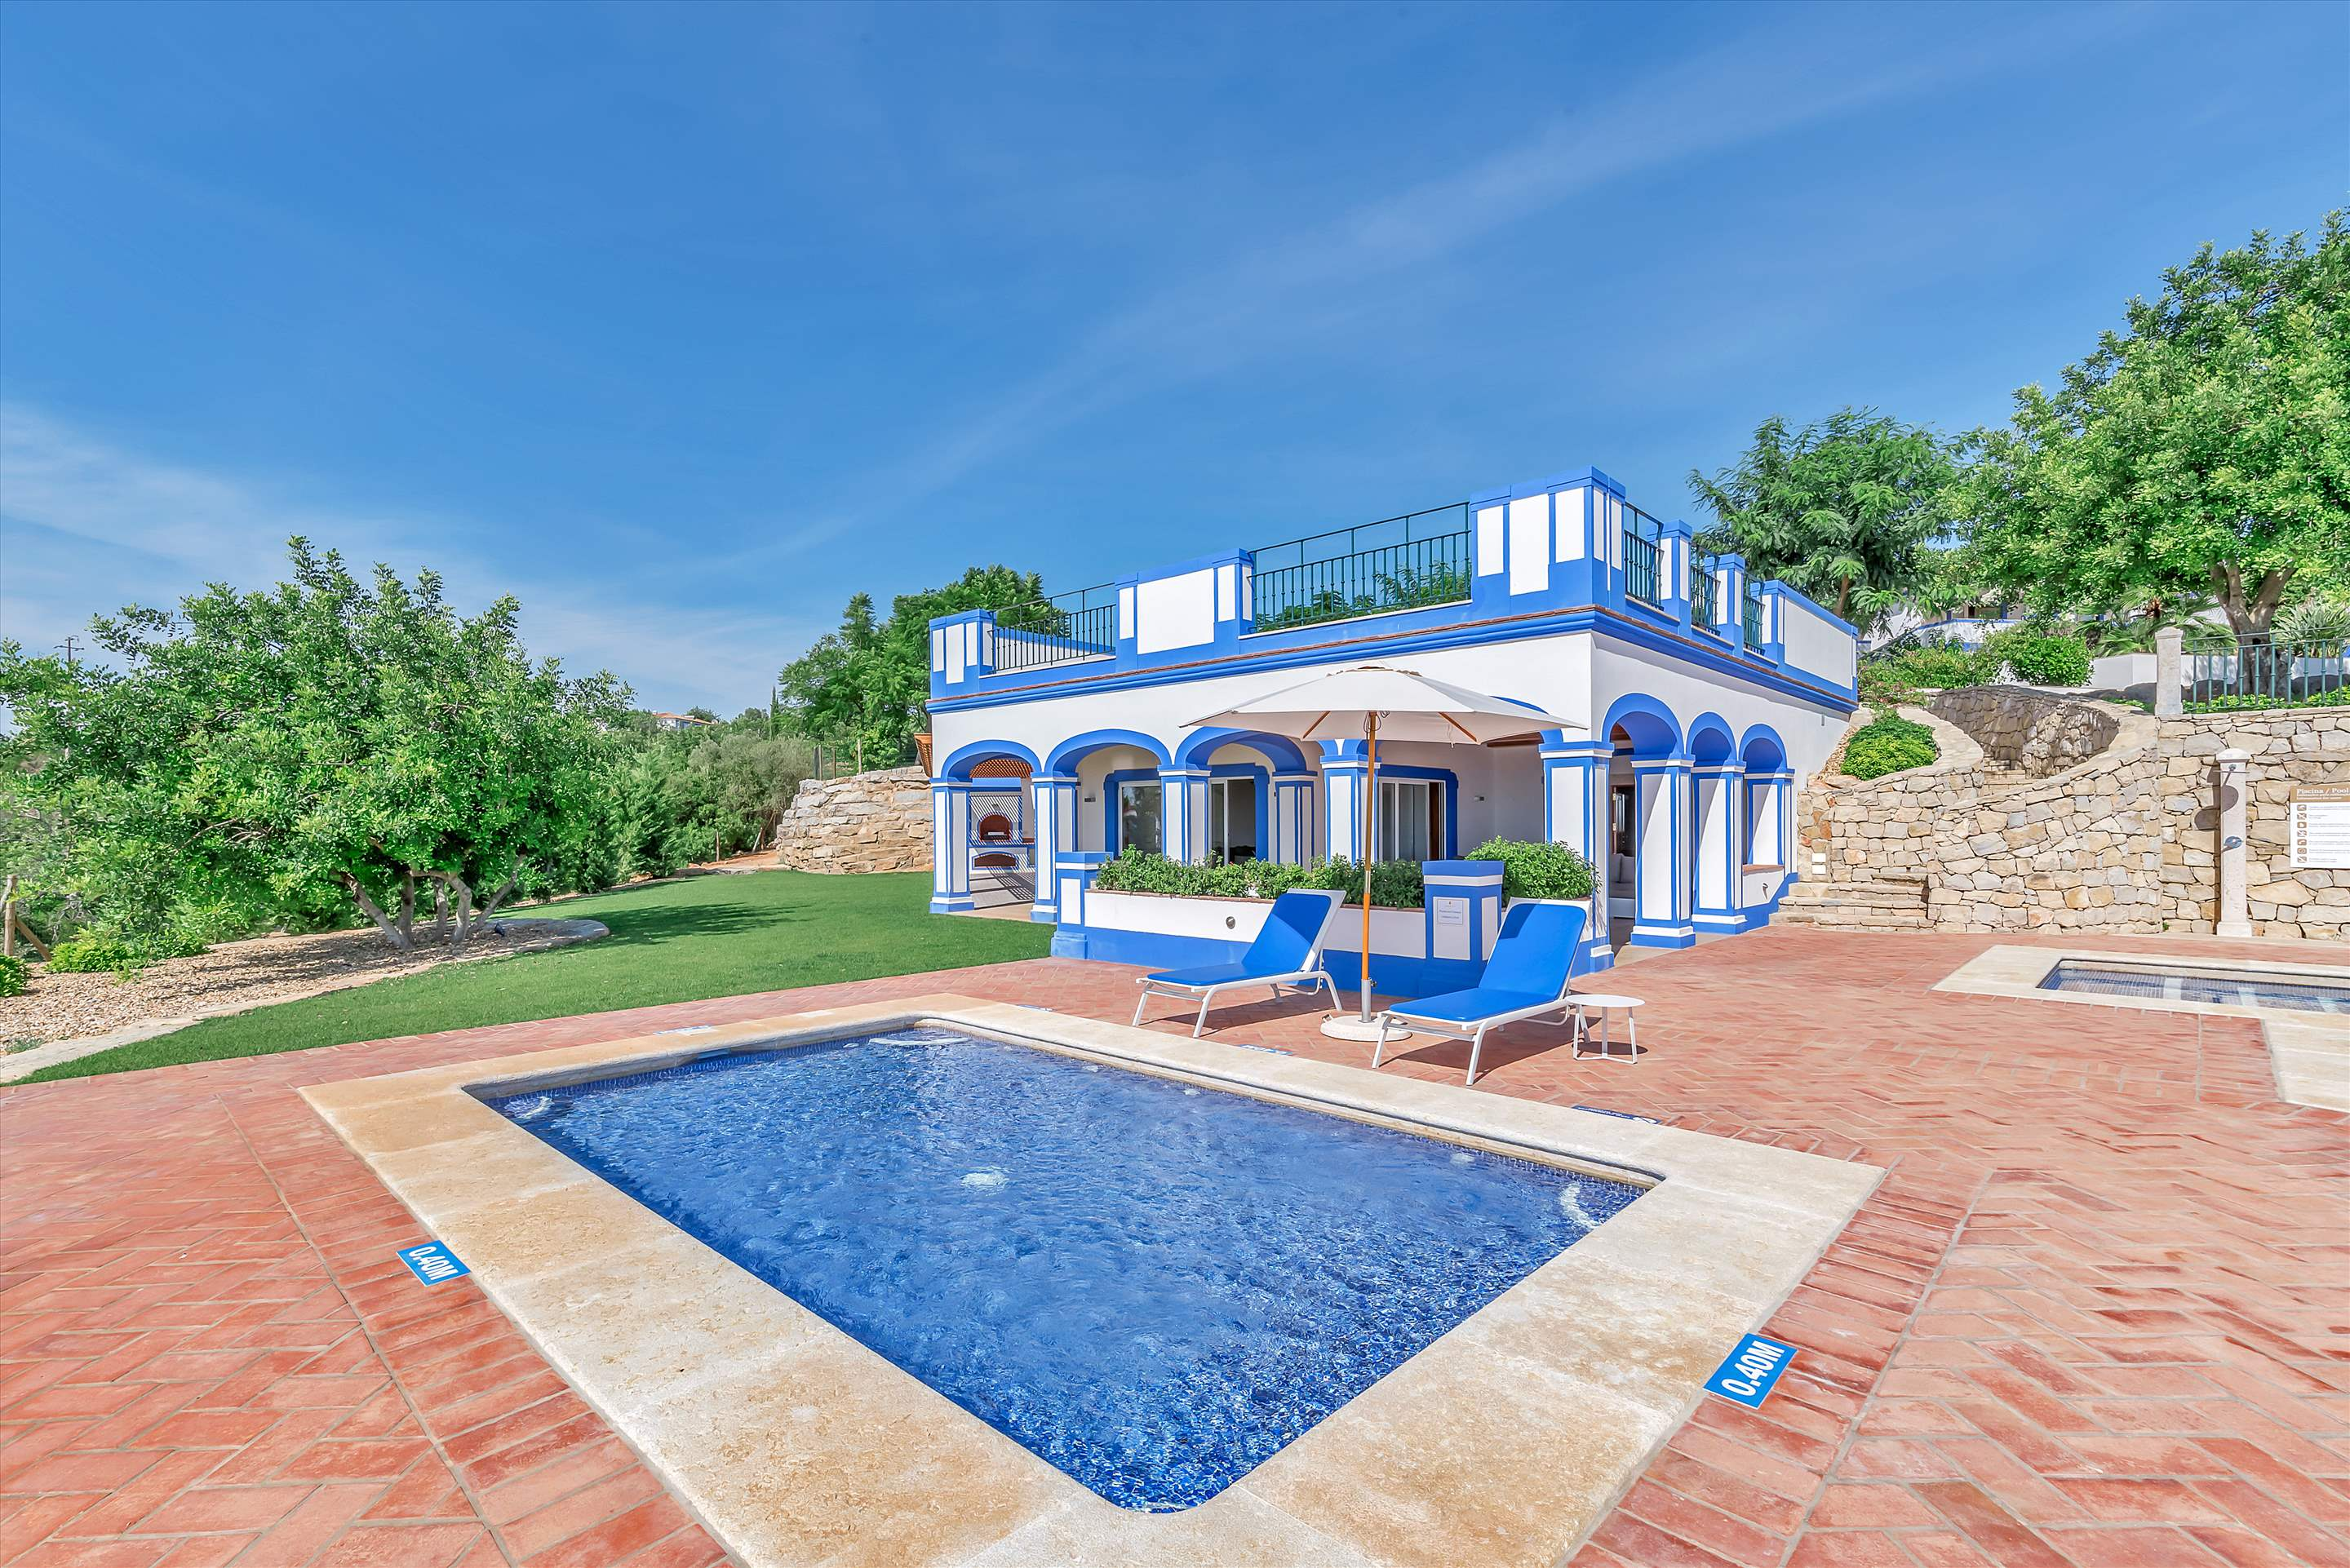 Casa Alemao, Main House, 5 Bedrooms, 5 bedroom villa in Vilamoura Area, Algarve Photo #32